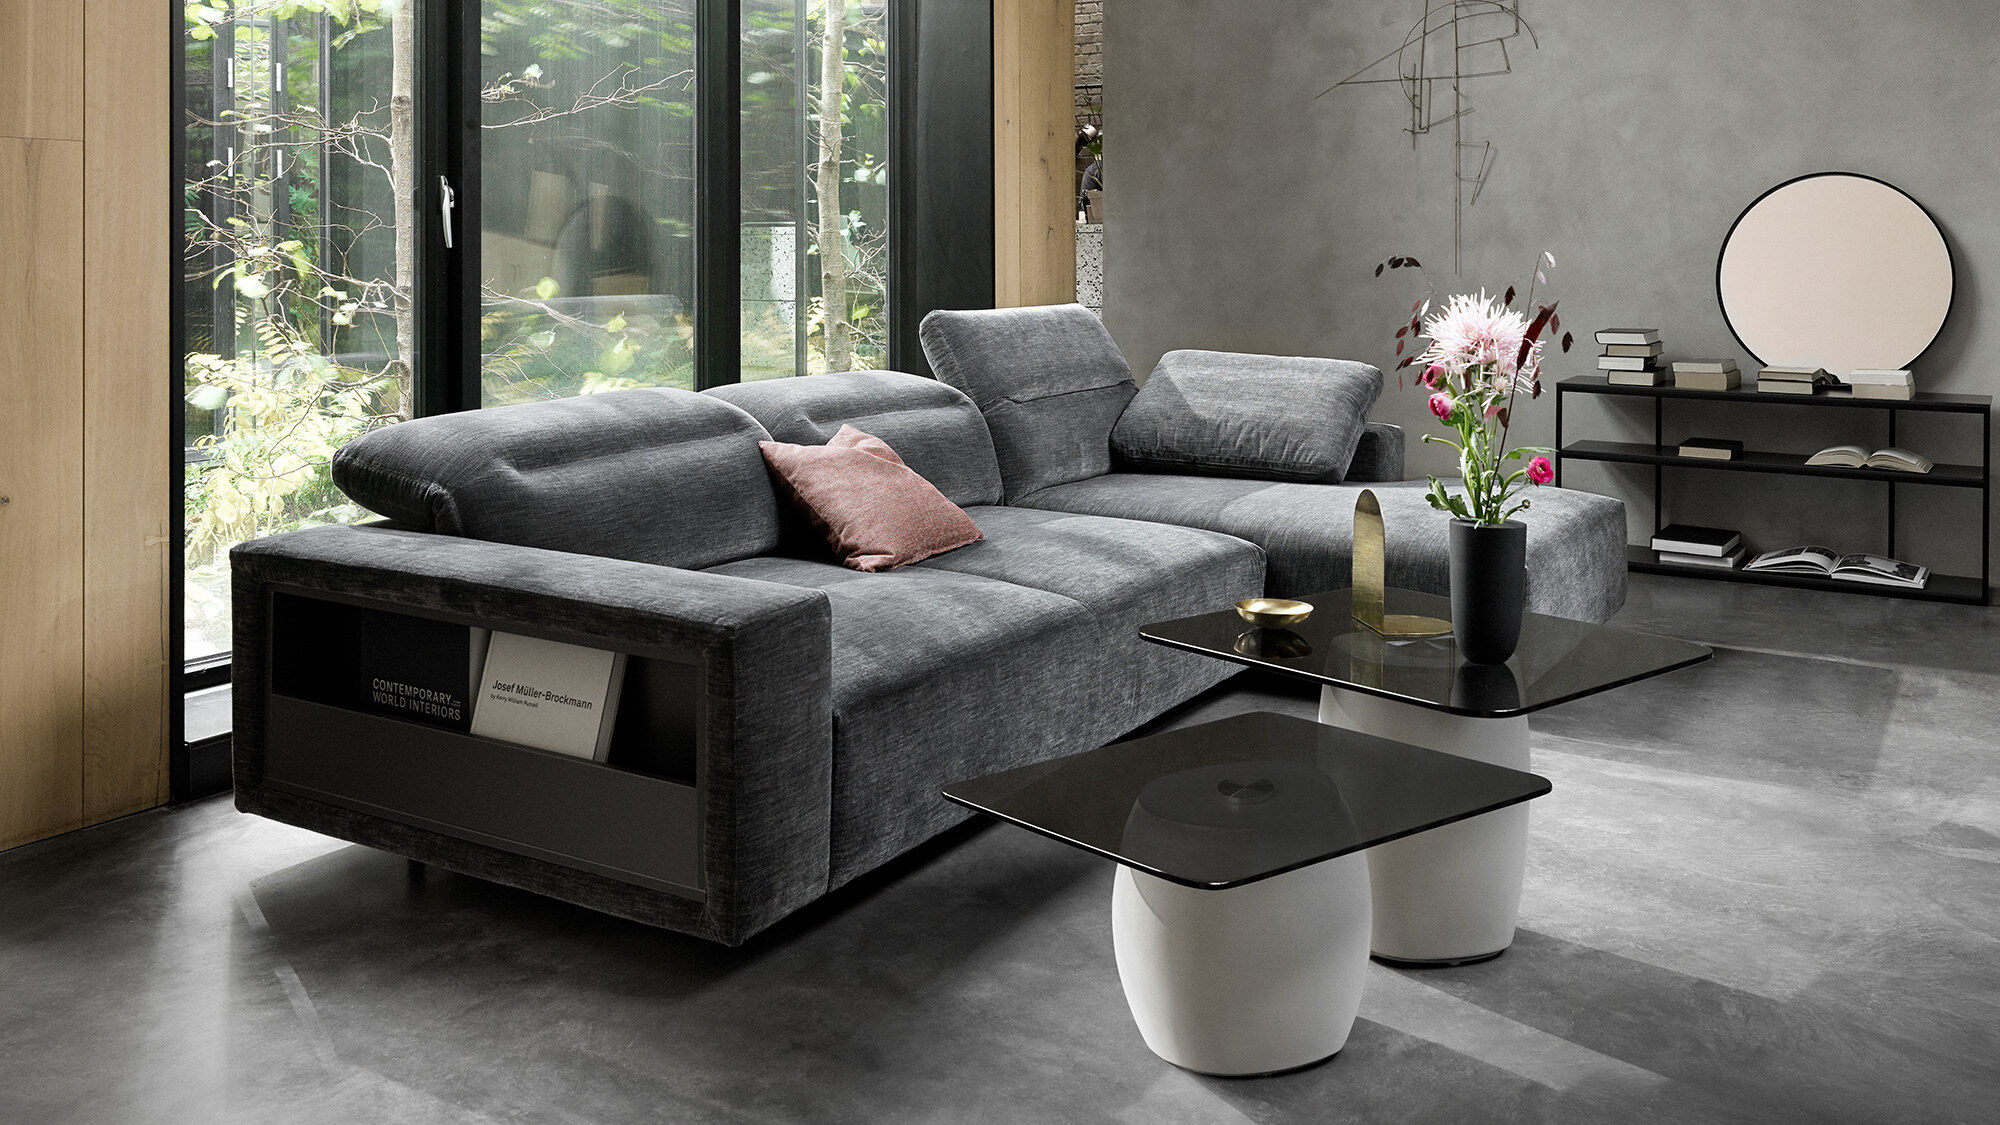 3 seater sofas - Hampton sofa with adjustable back